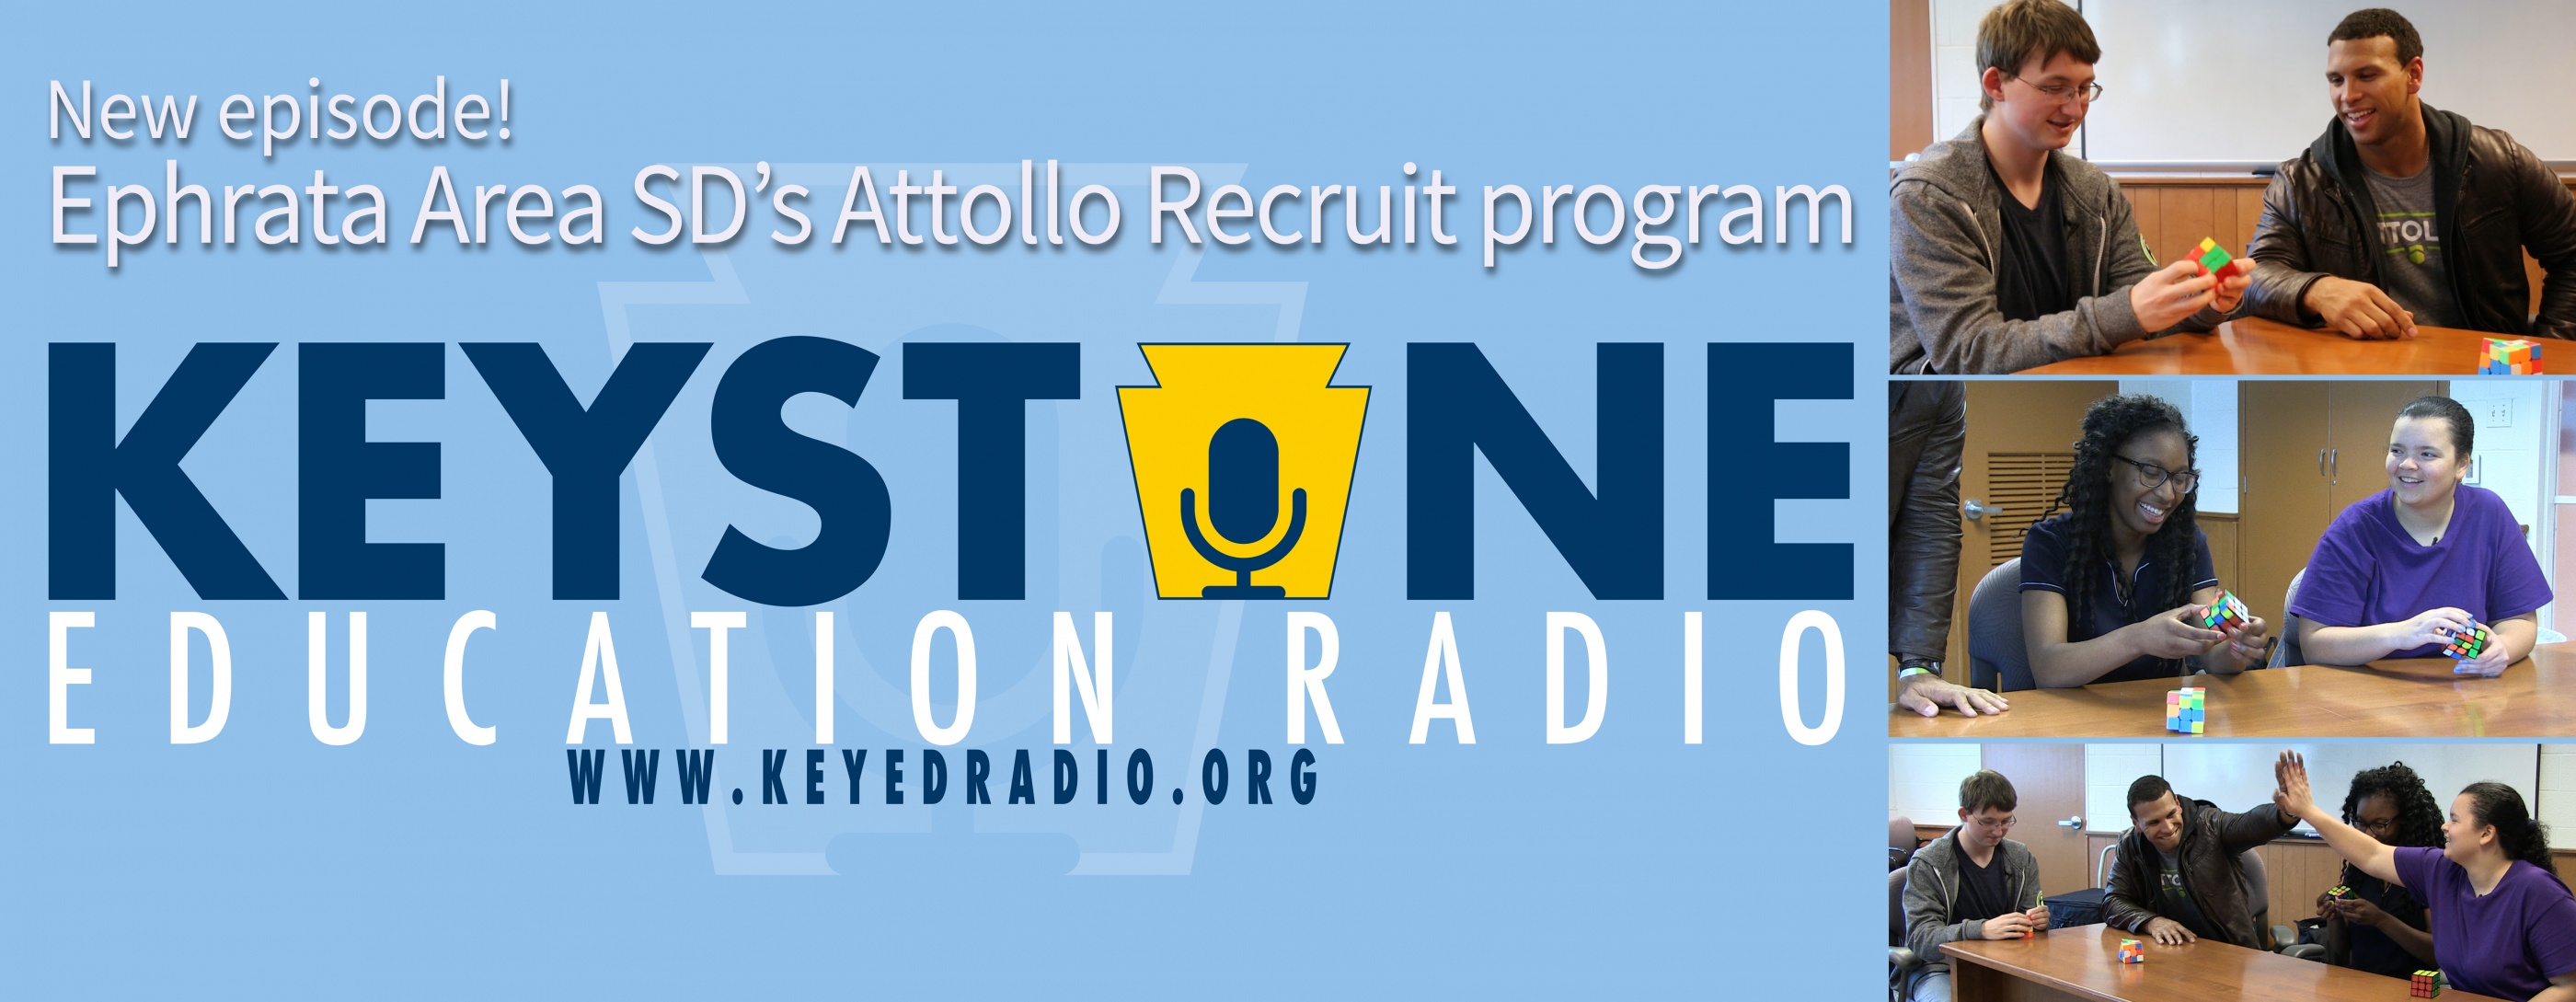 New podcast episode! Keystone Education Radio